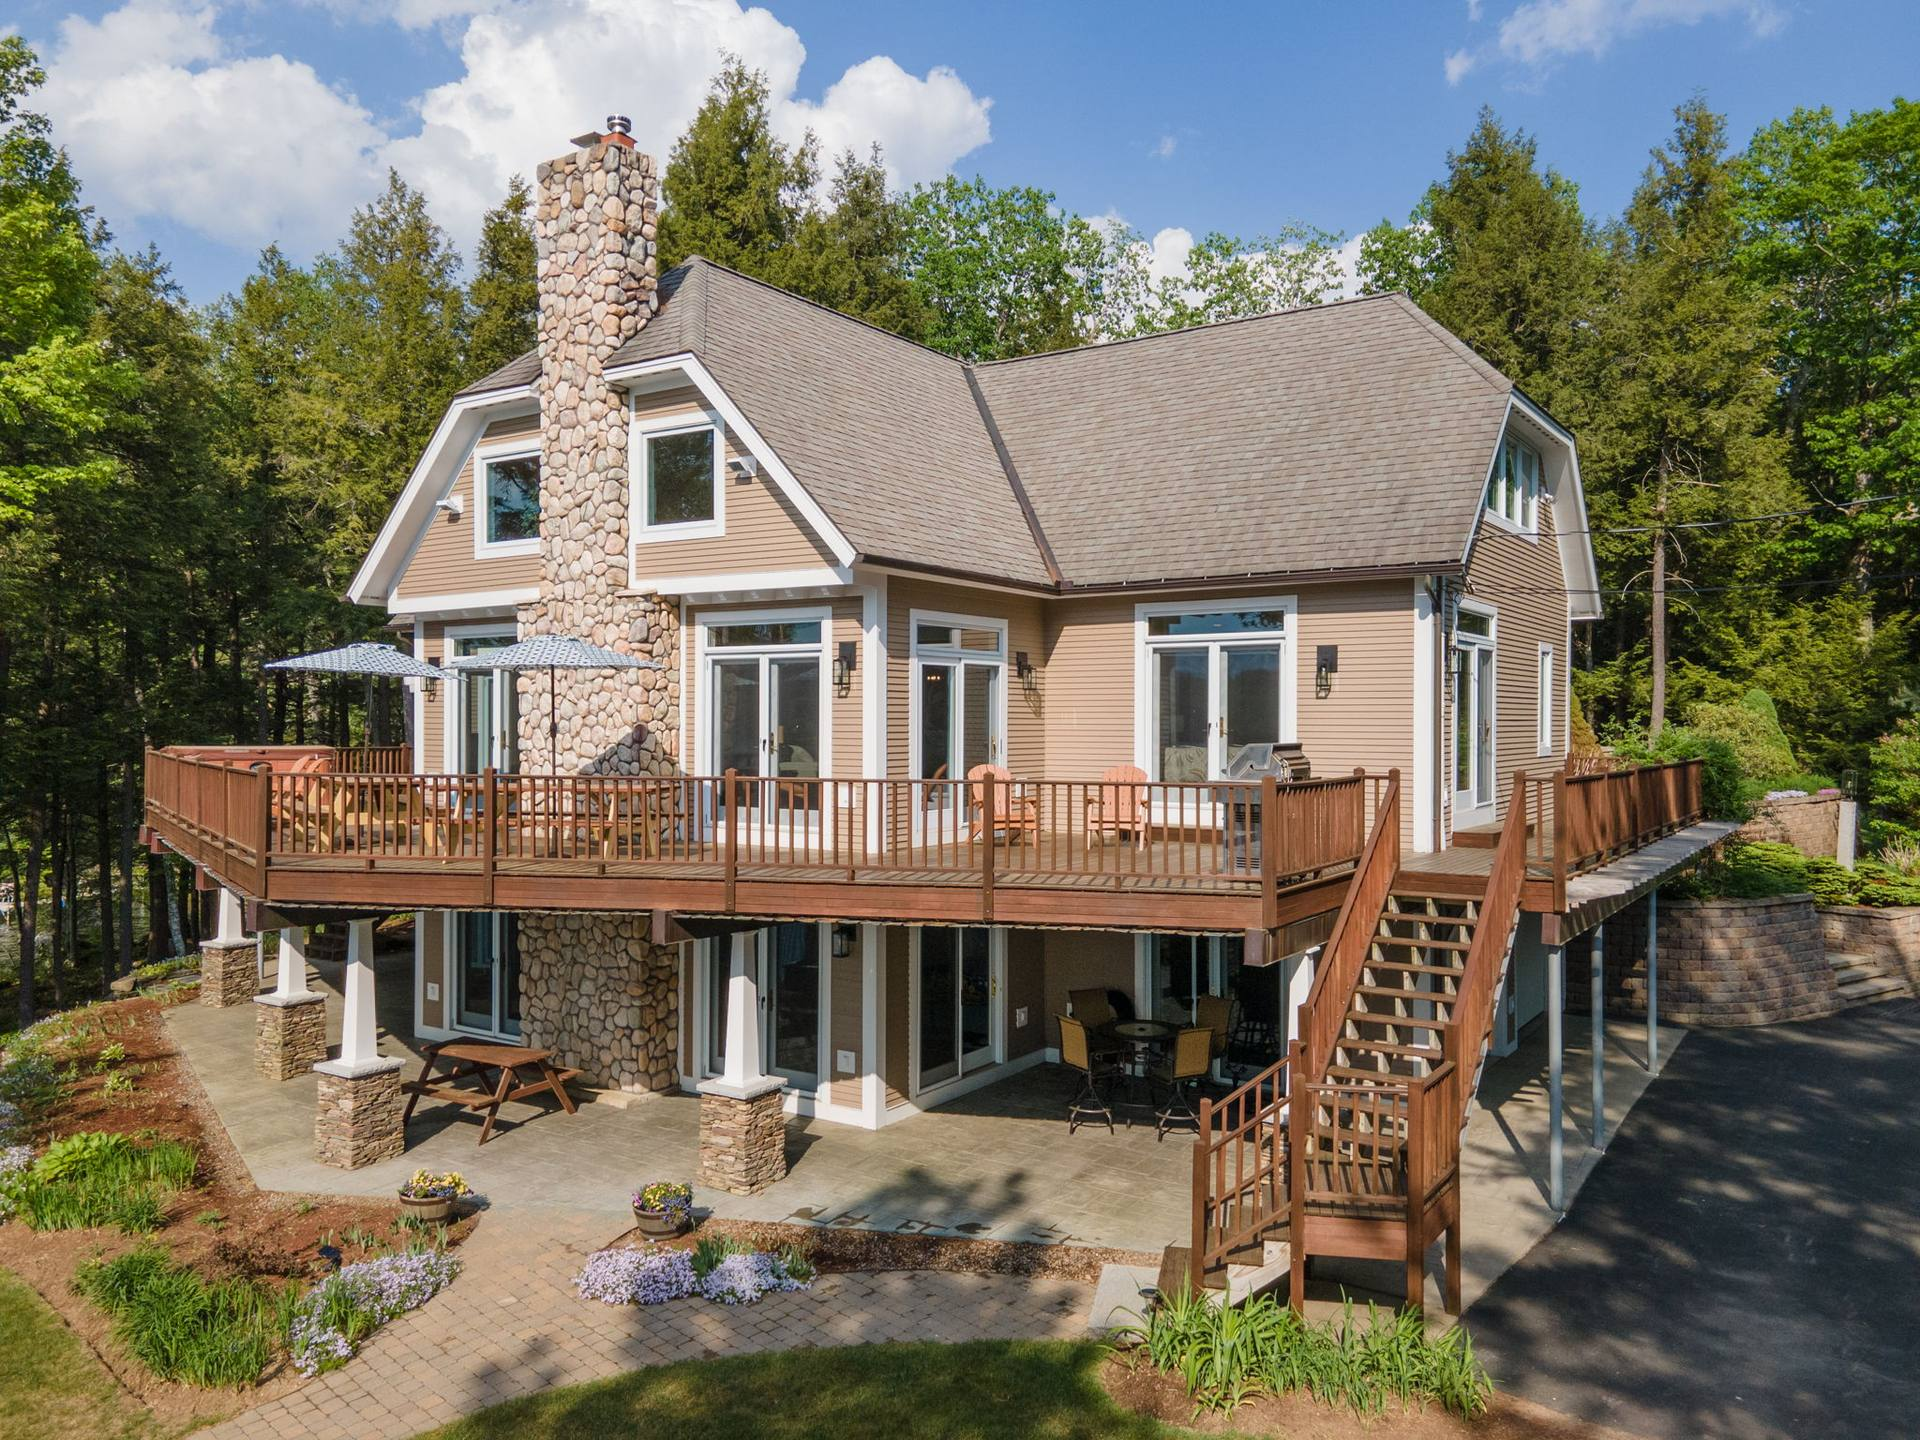 46 Dennis Ave, Laconia, NH 03246, US